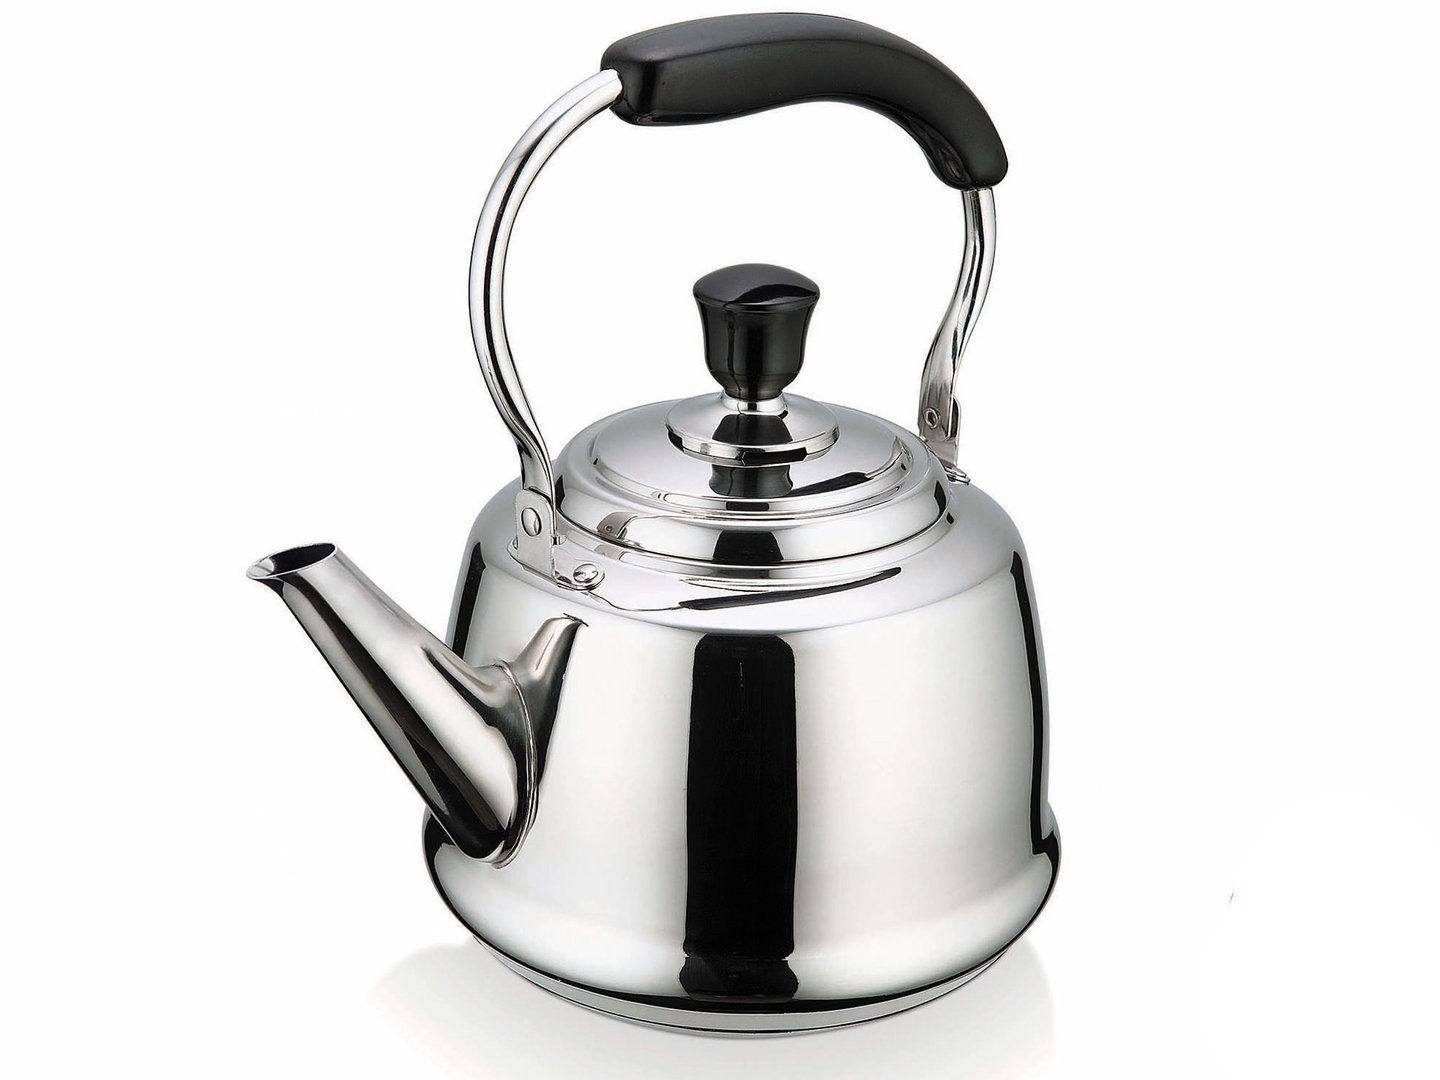 BEKA water kettle CLAUDETTE stainless steel 4 liters